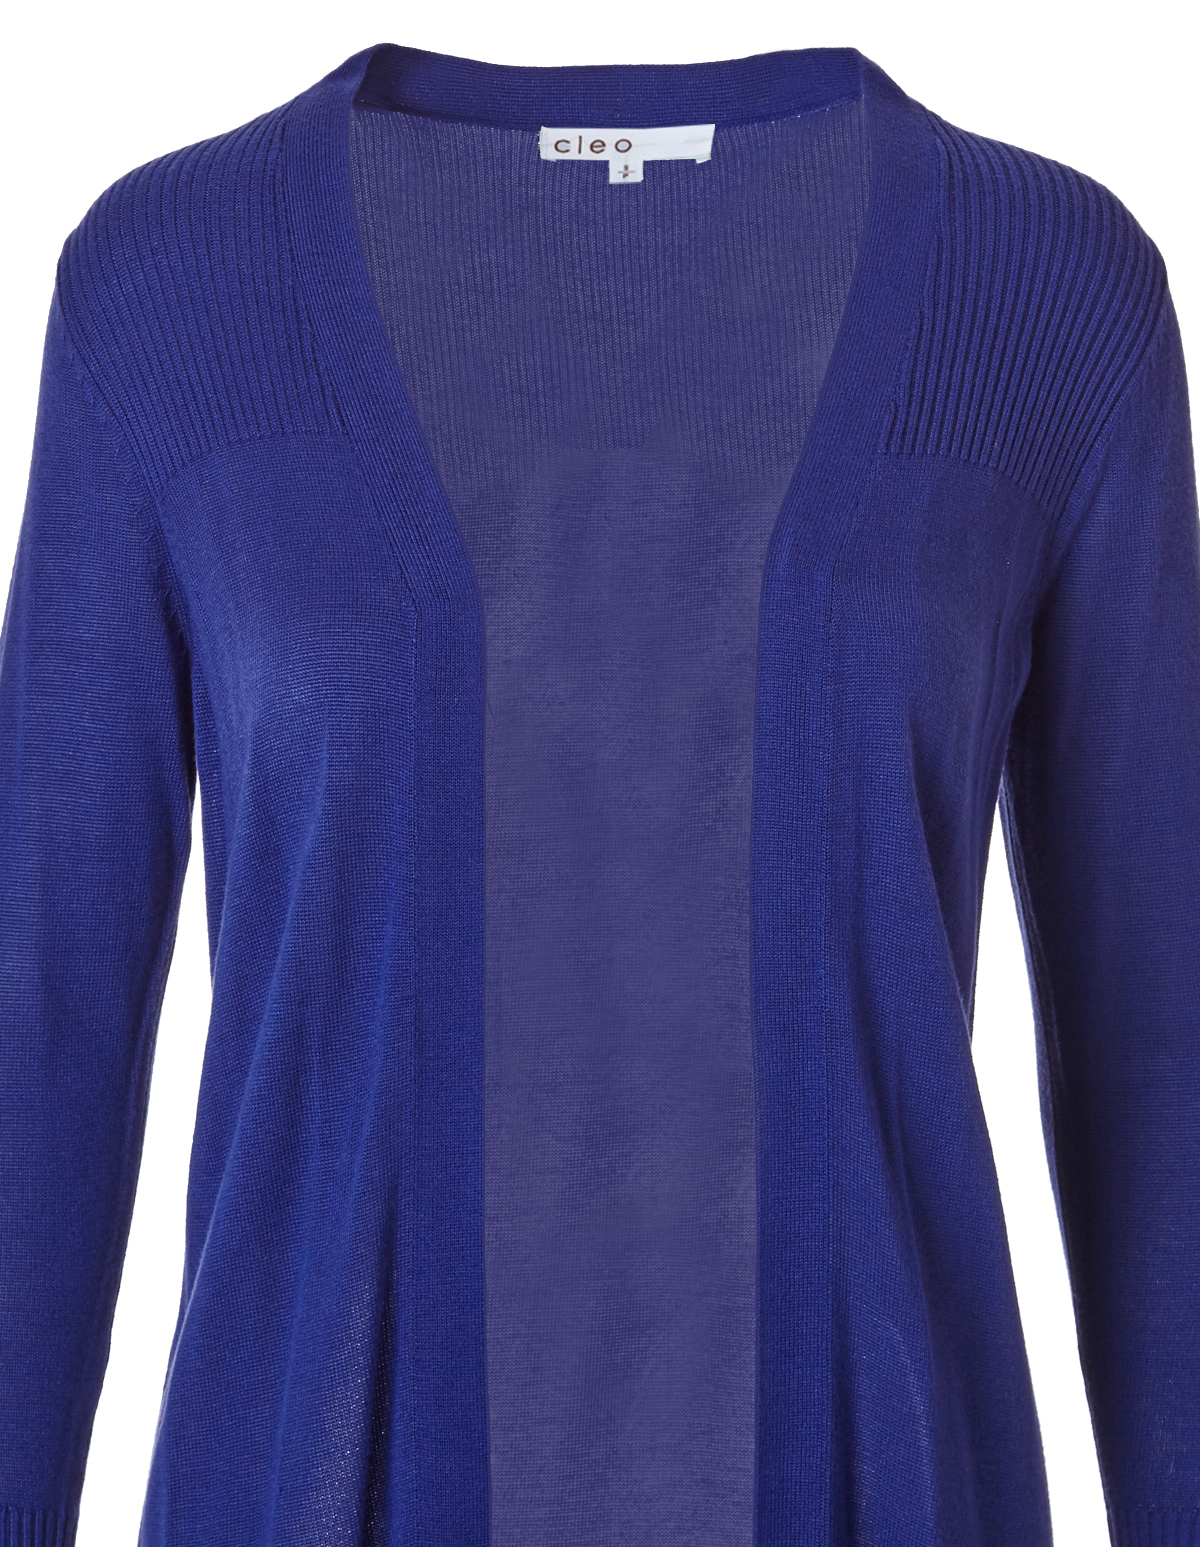 Royal Blue Cardigan Sweater | Cleo